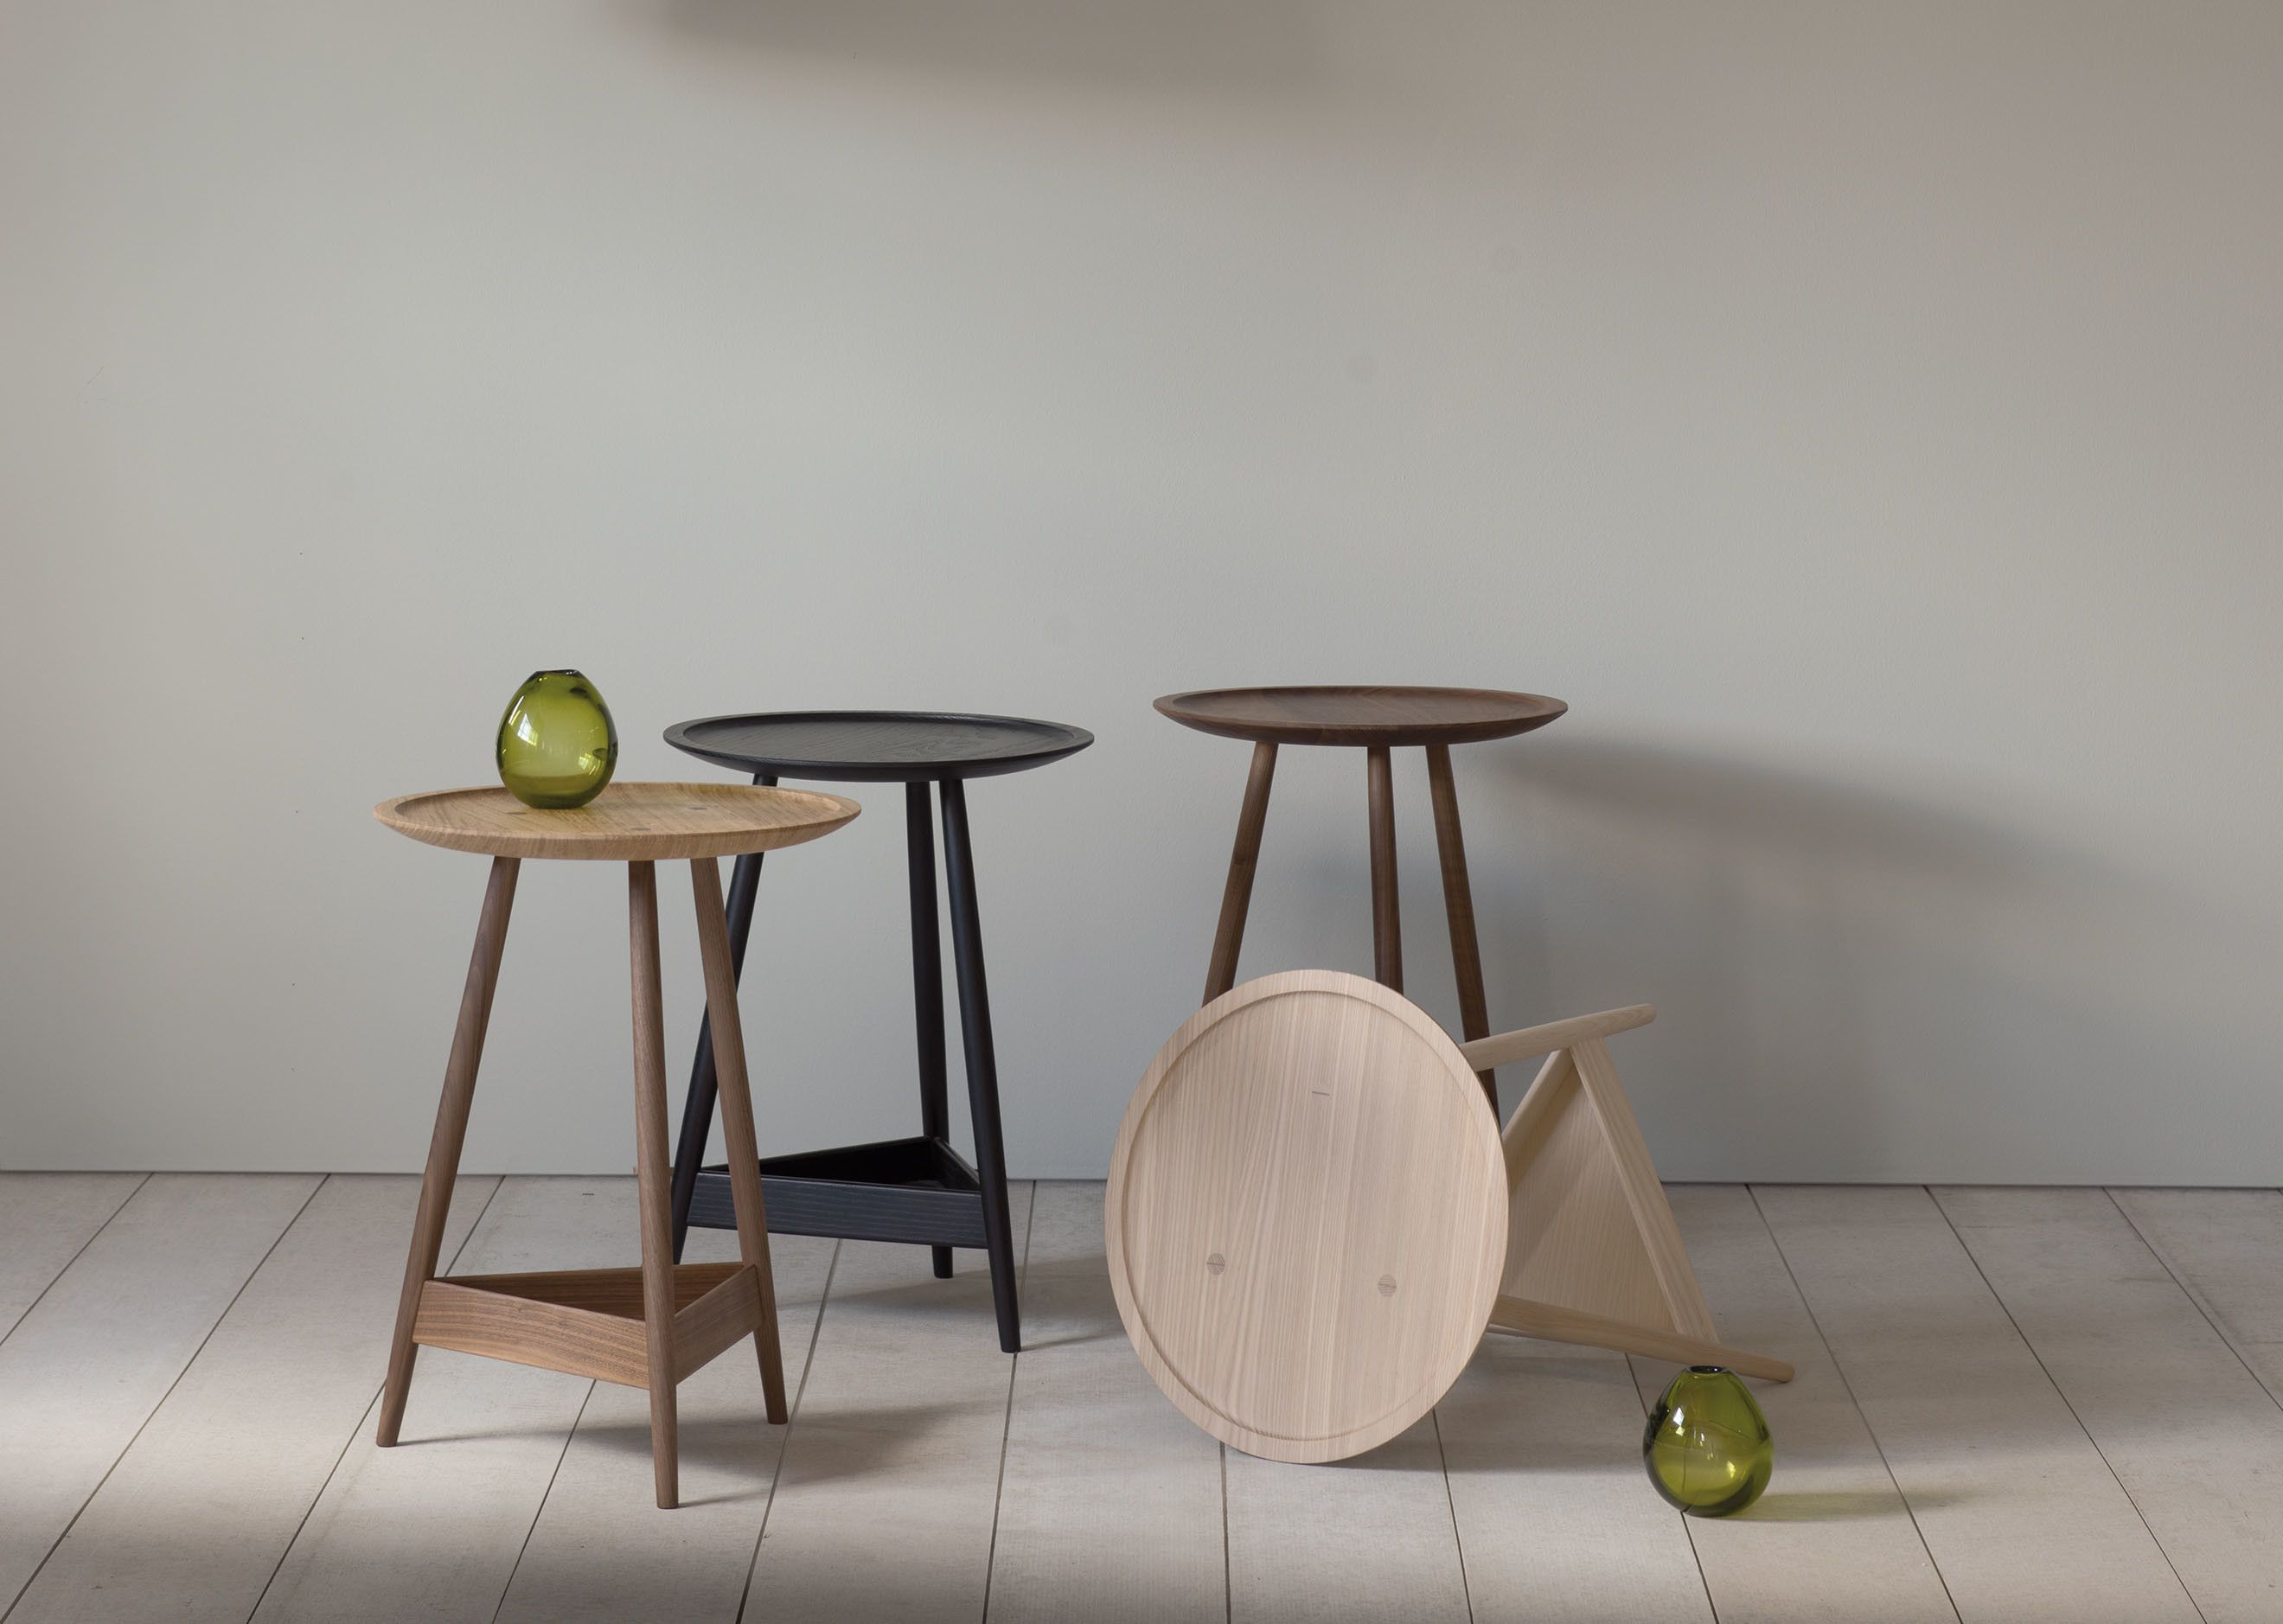 Contemporary Modern Round Side Table A Three Legged End Table With Turned Legs And A Lipped Top Clyde Si Contemporary Side Tables Side Table Design Furniture [ jpg ]